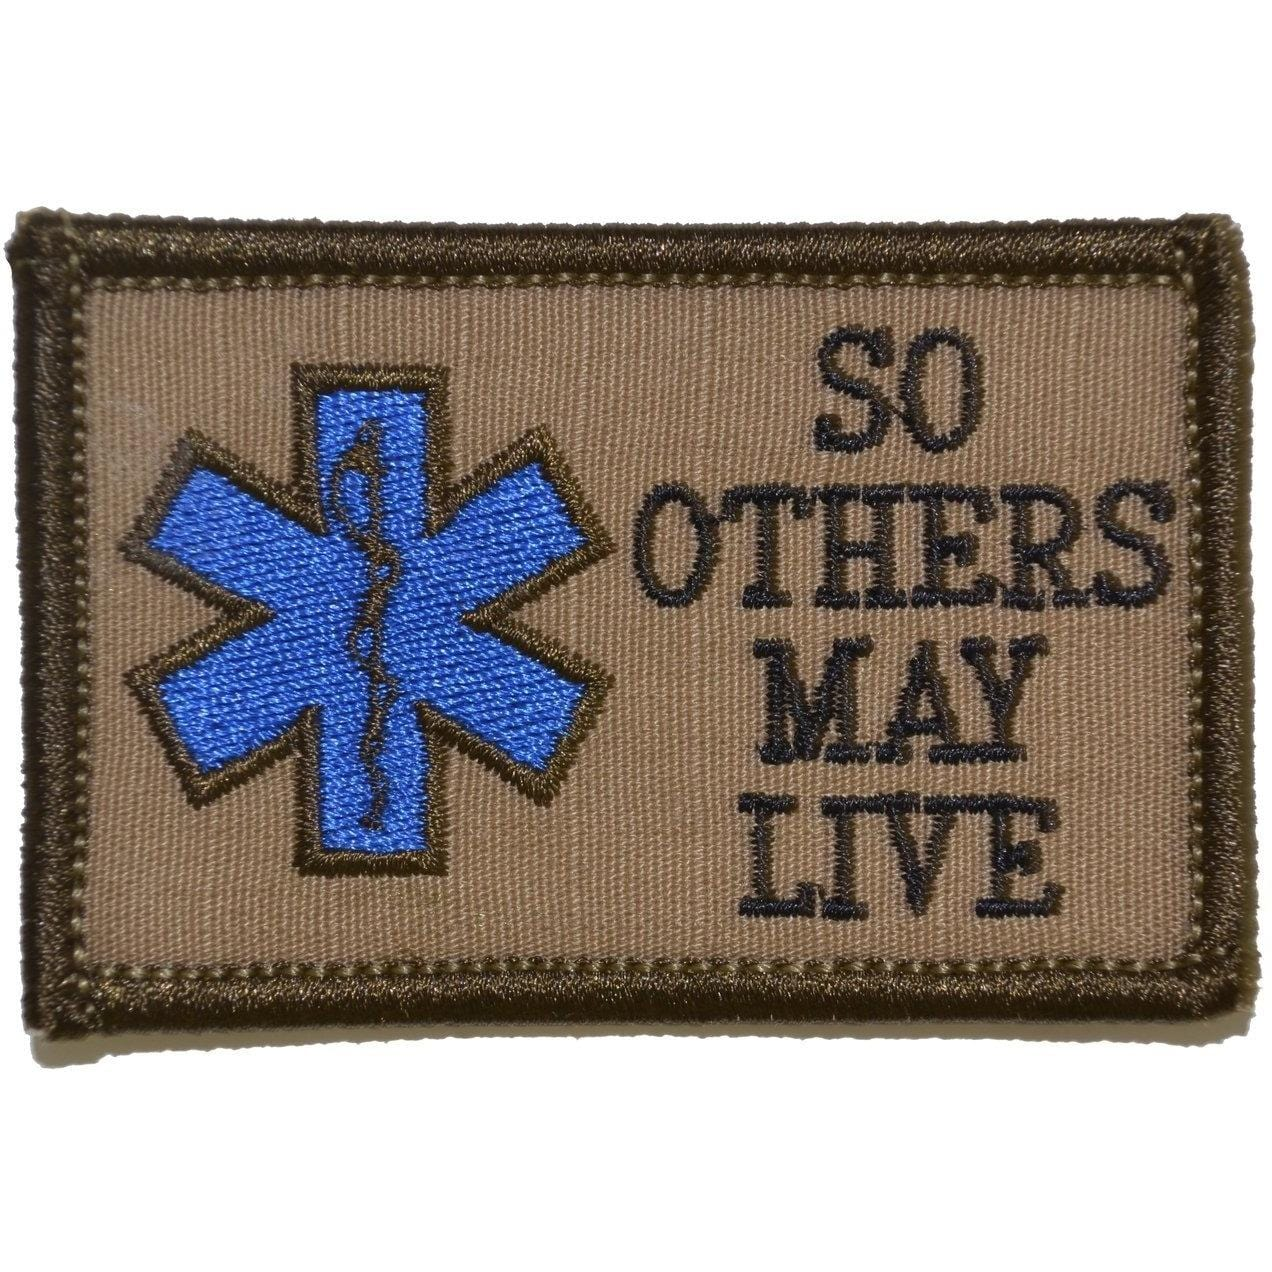 Tactical Gear Junkie Patches Coyote Brown w/ Black EMS So Others May Live - 2x3 Patch